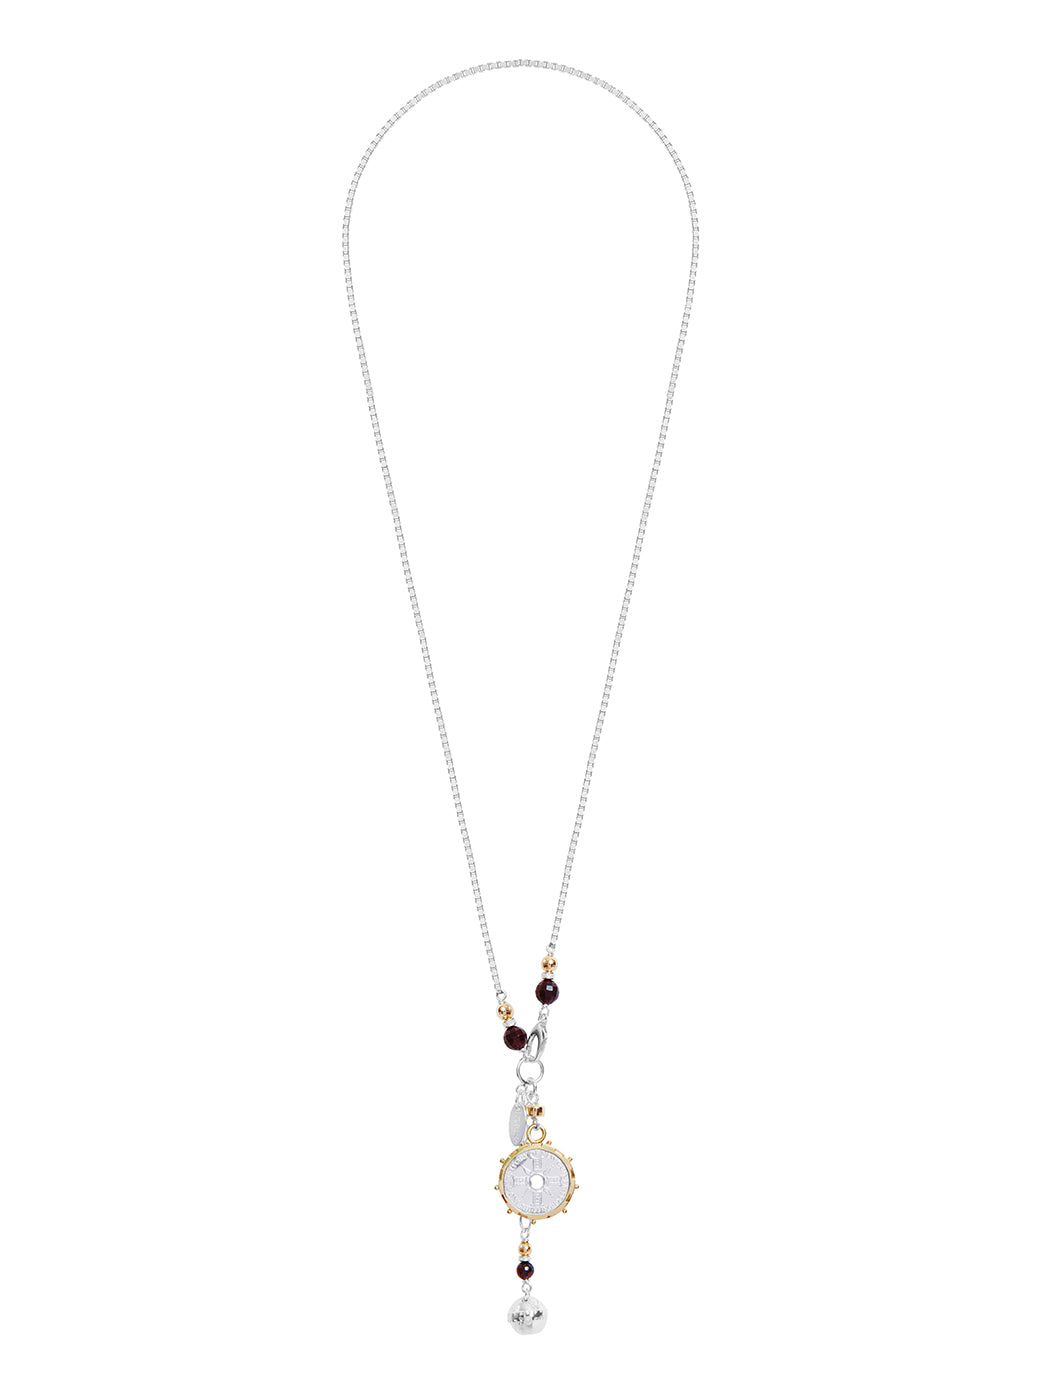 Fiorina Jewellery Gold Encased Jupiter Necklace Garnet and Gold